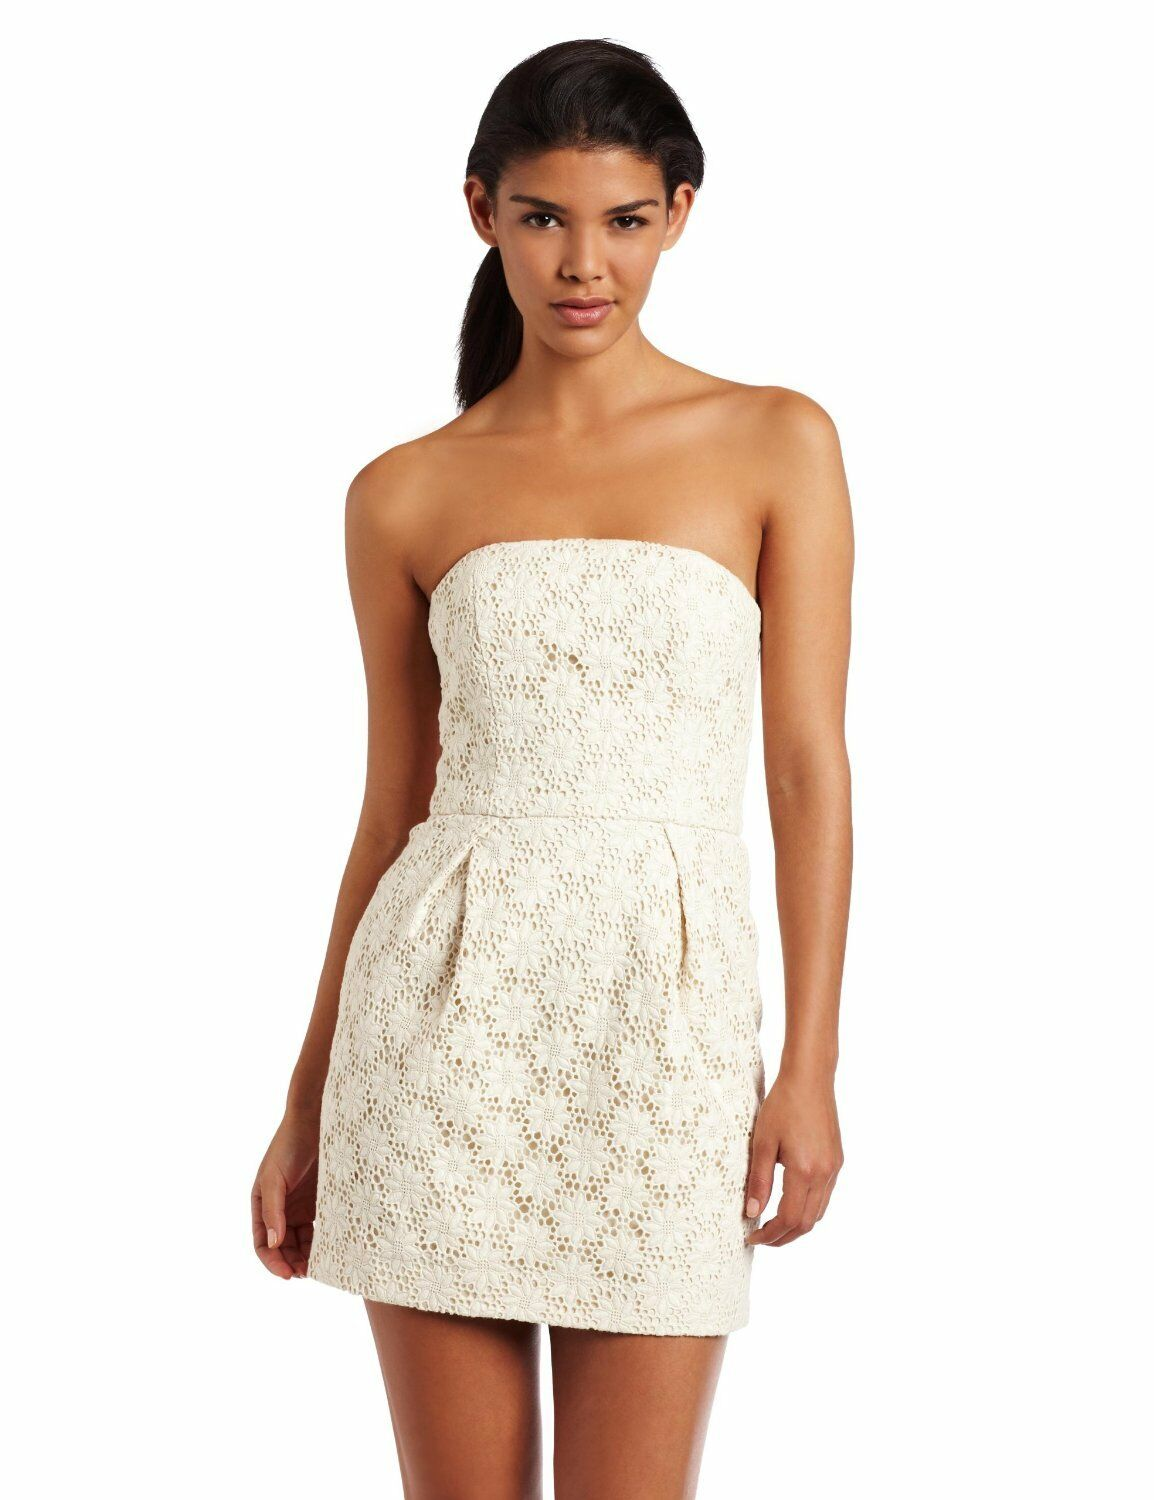 French Connection Creamy Crochet Lace Strapless Dress